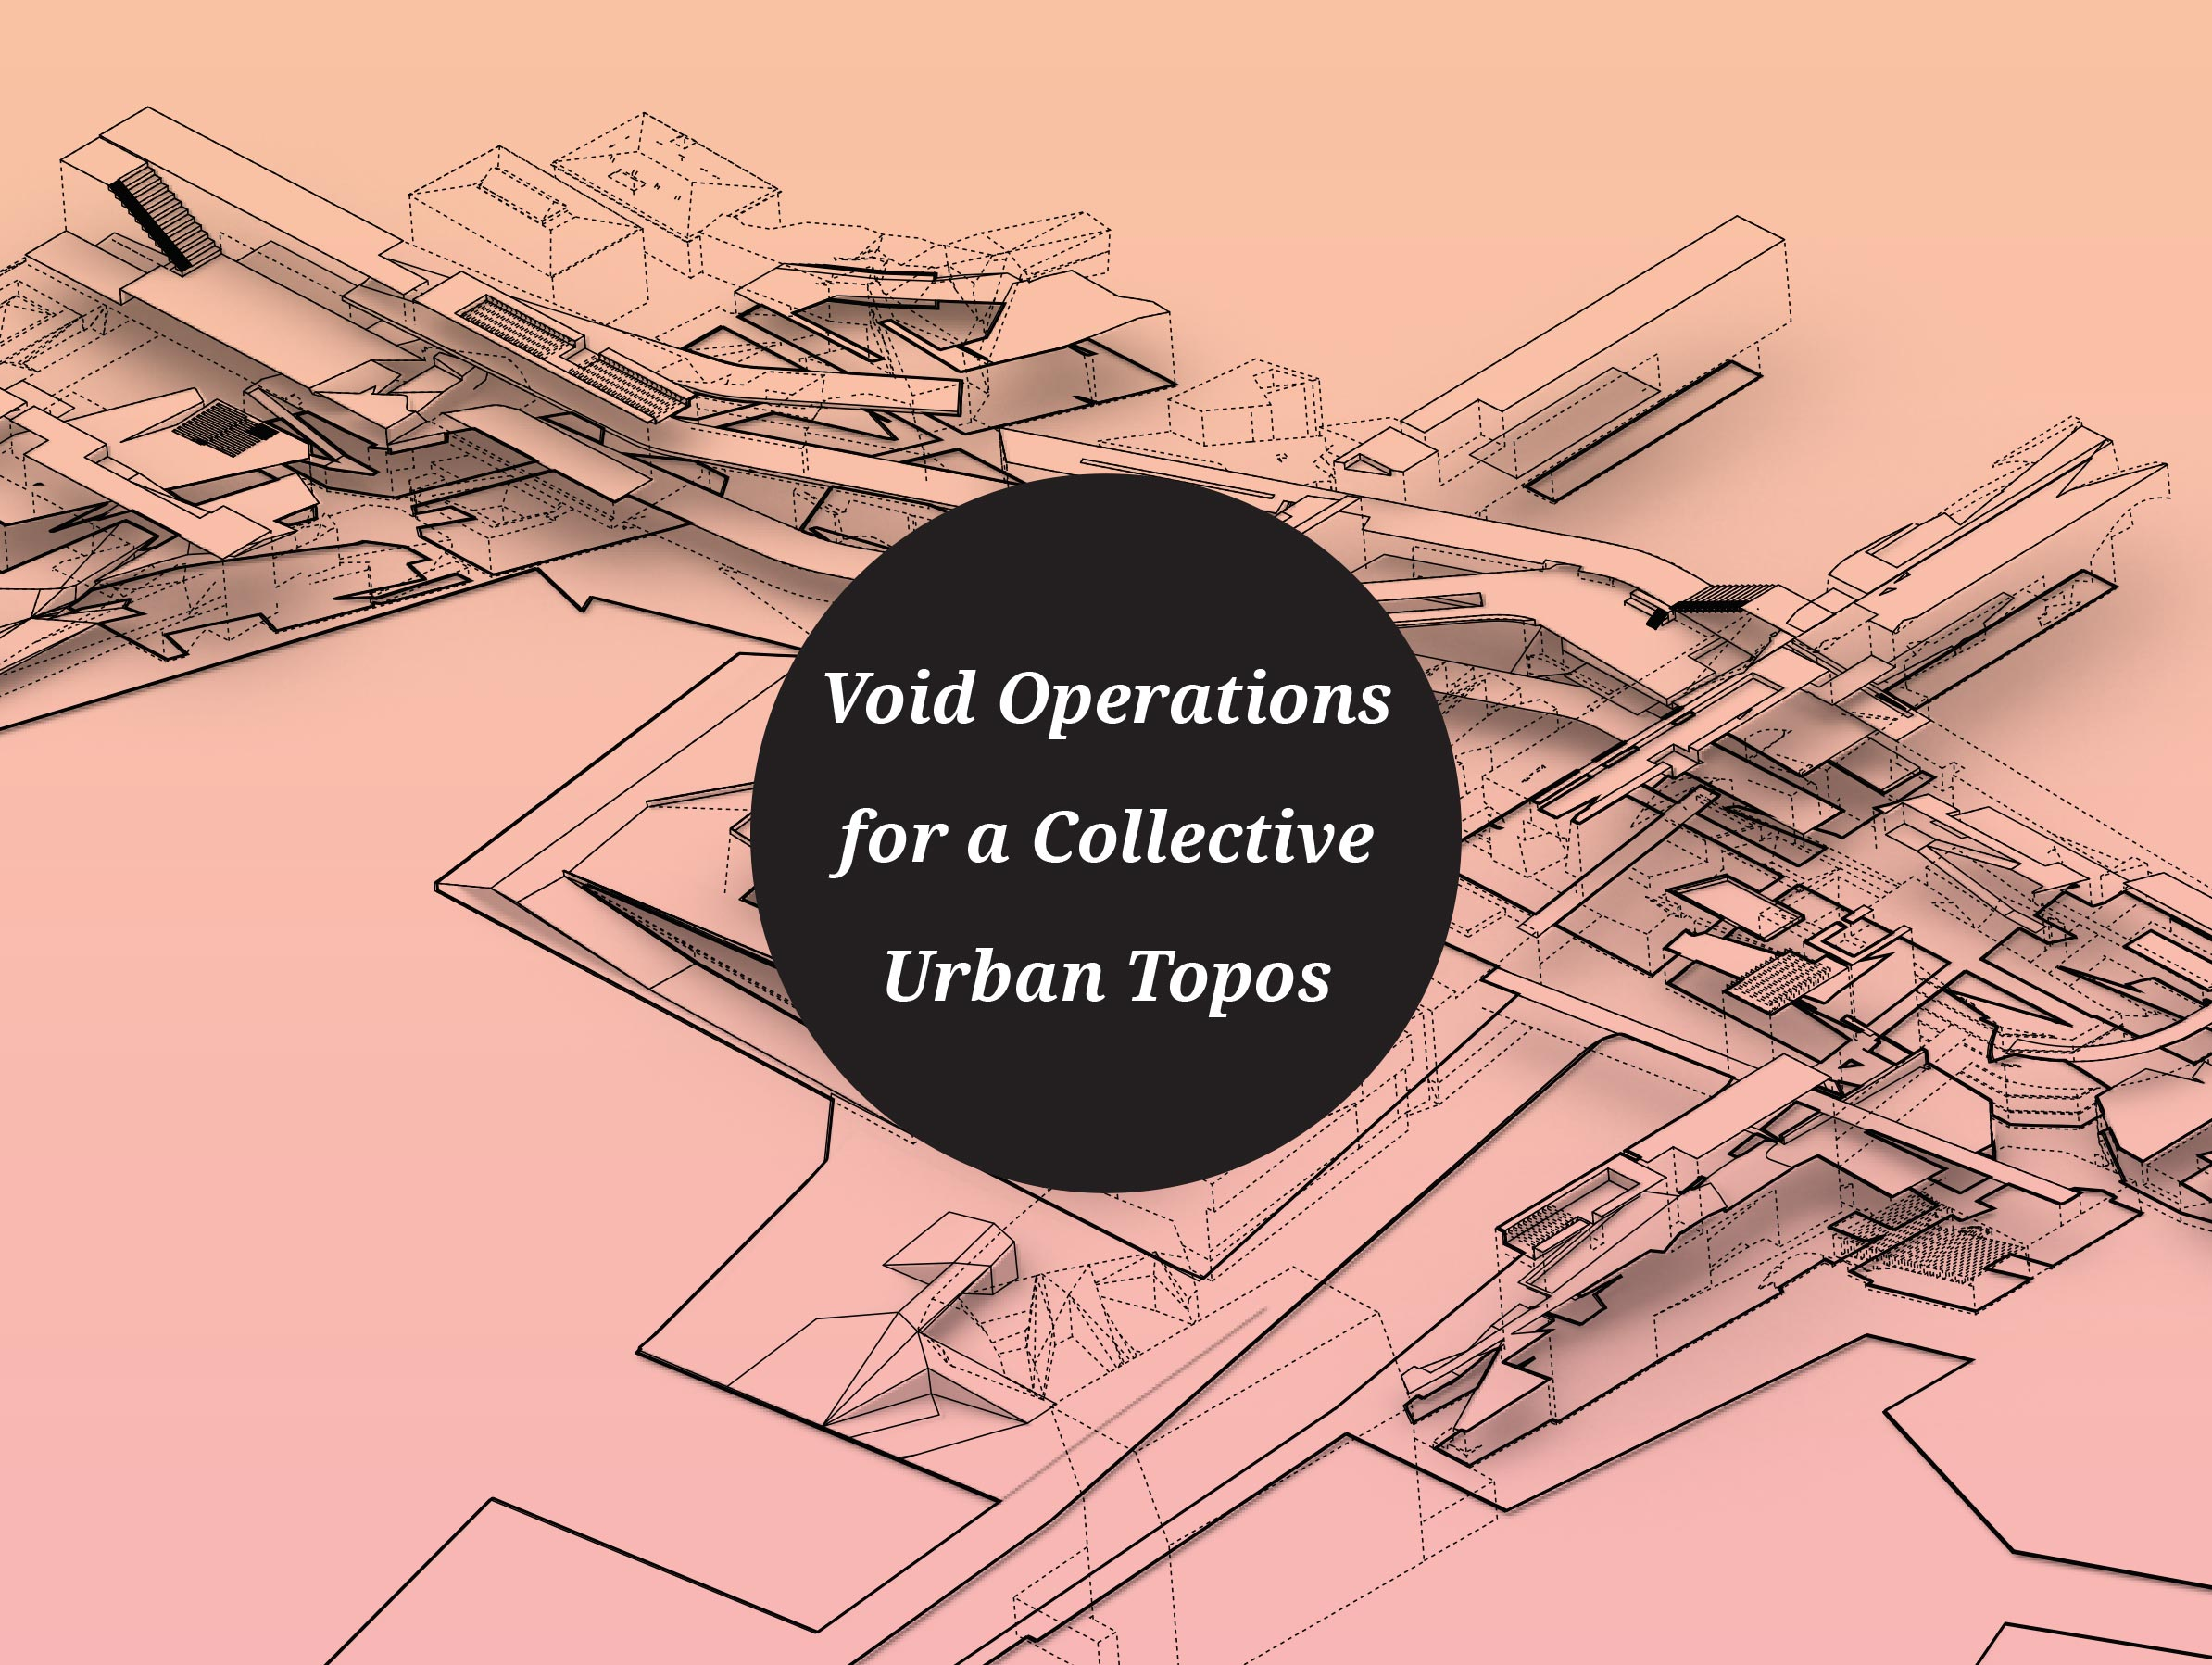 Void Operations for a Collective Urban Topos